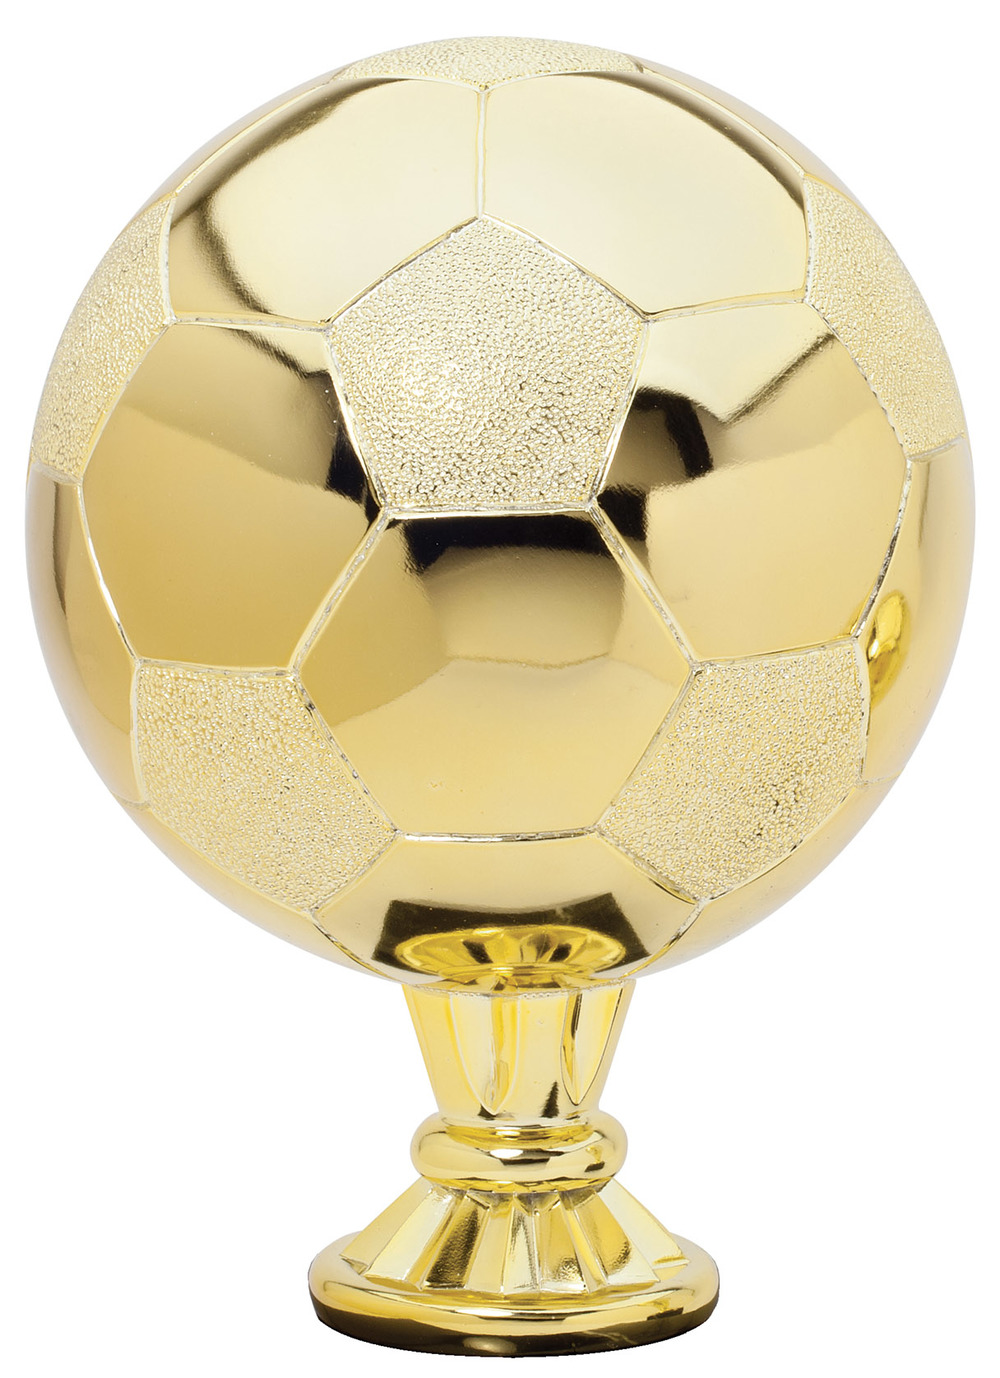 "Soccer - Gold   RG3113 - 11.5"" tall  Price = $109"